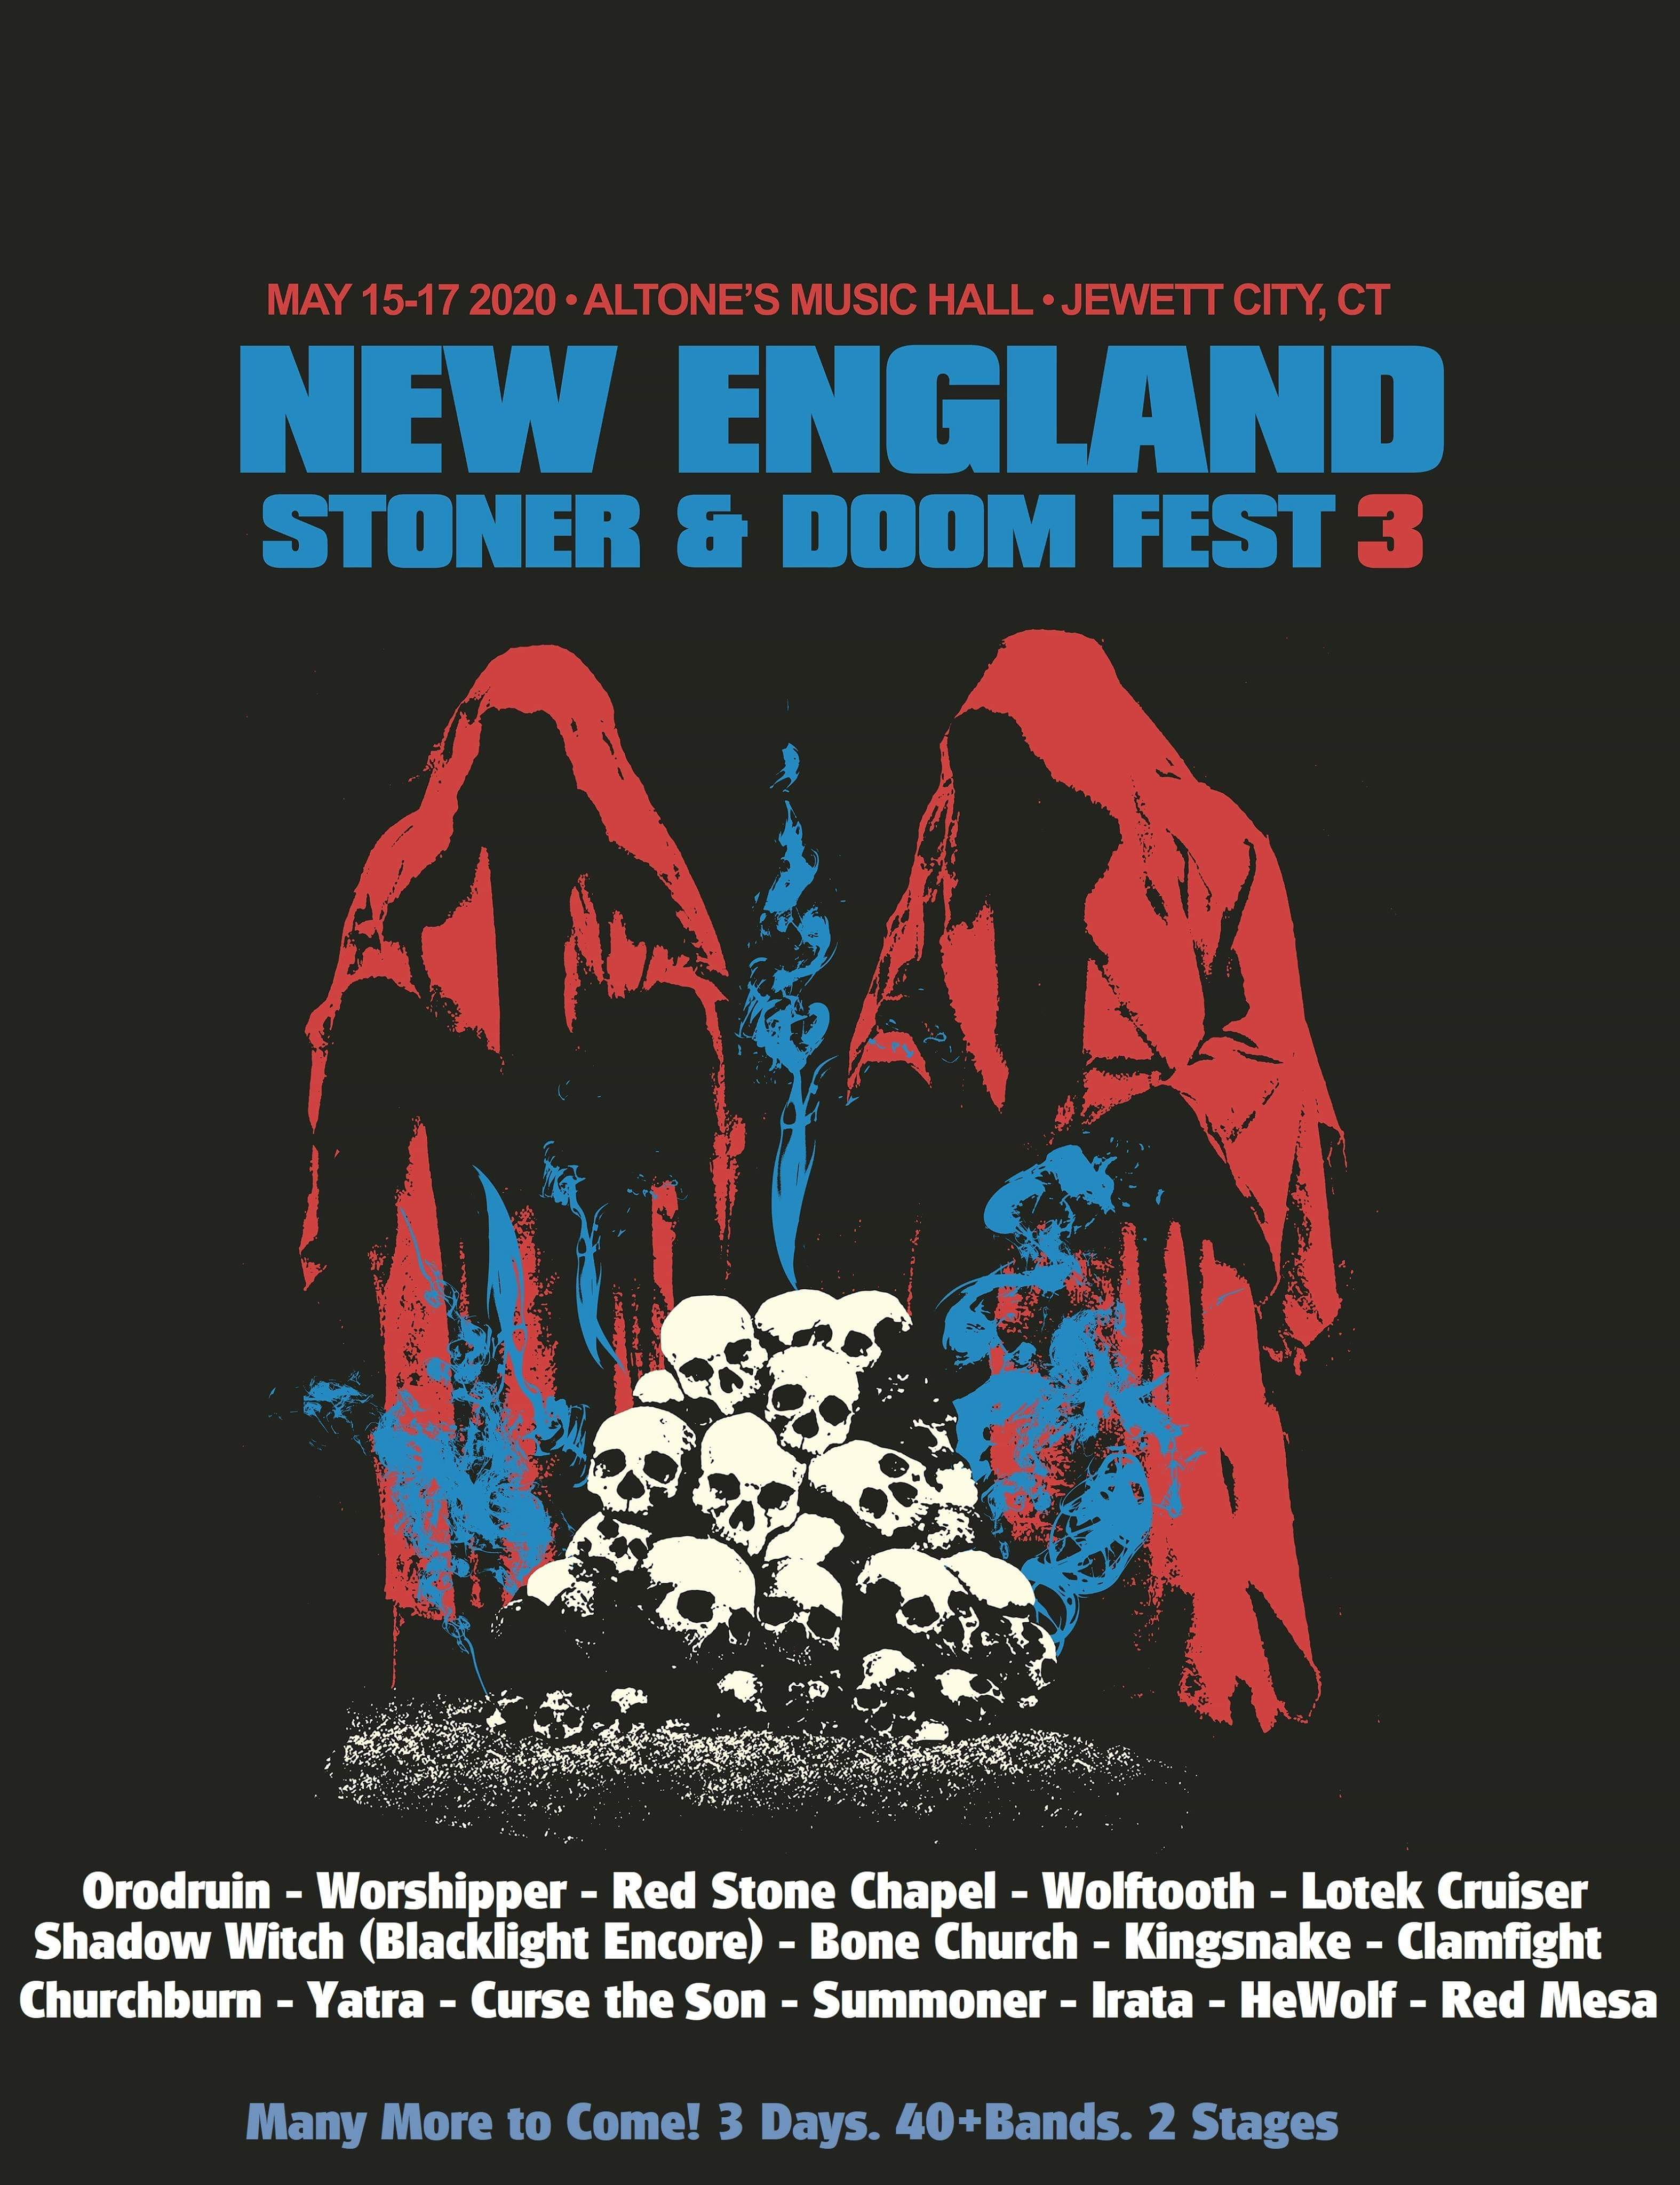 New England stoner and doom fest 2020 poster